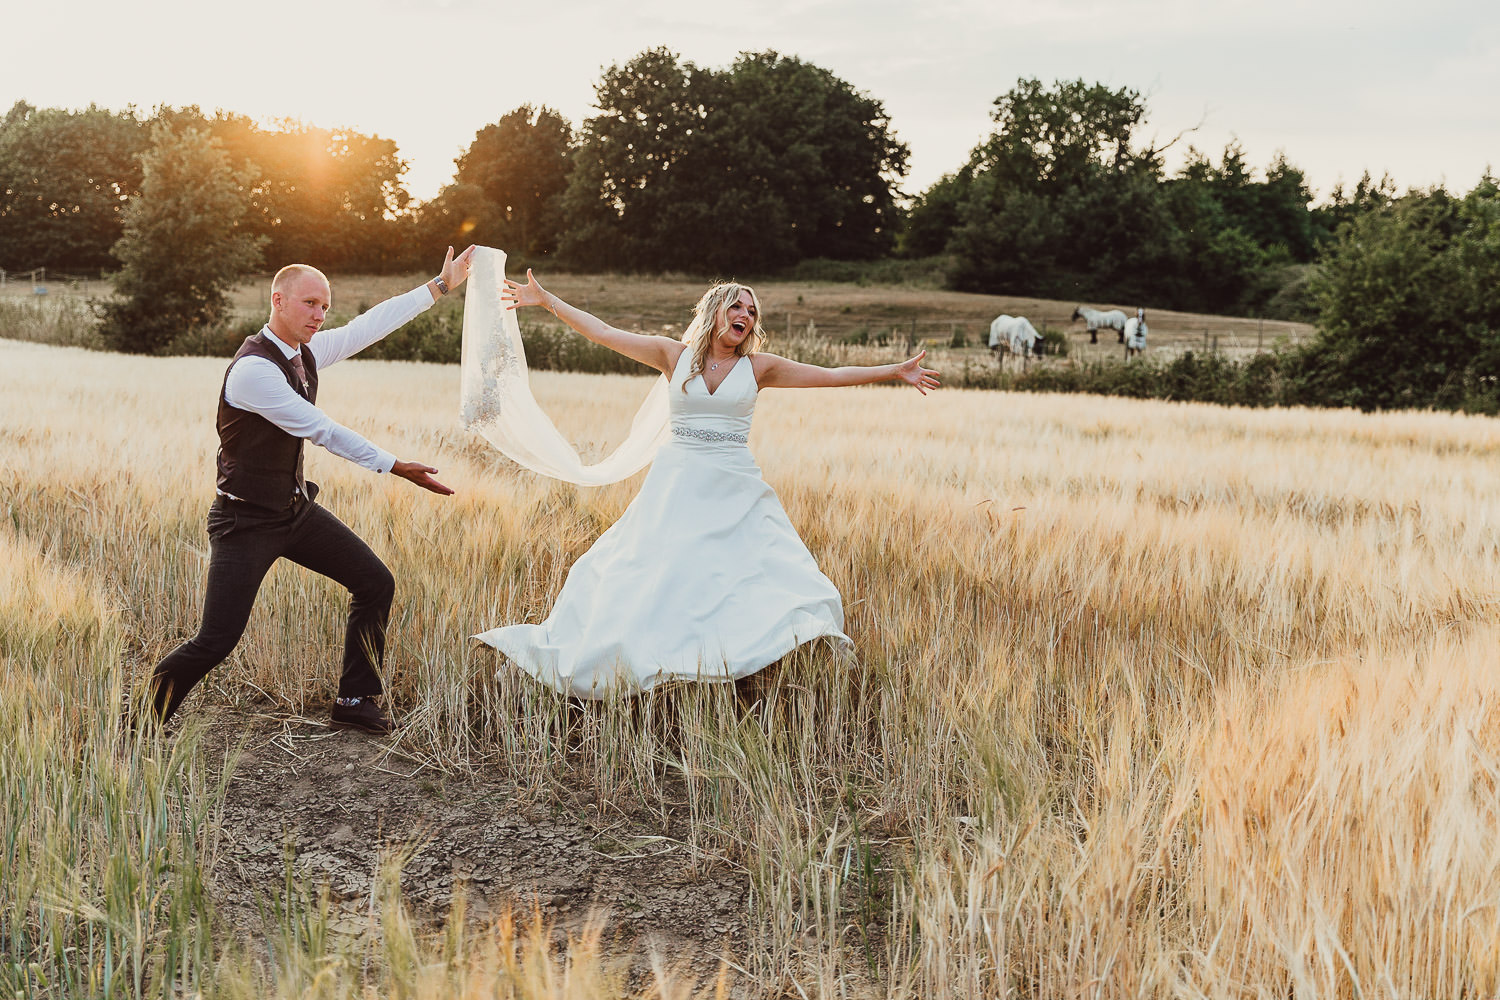 Norfolk norwich  wedding bride and groom in field at sunset dancing